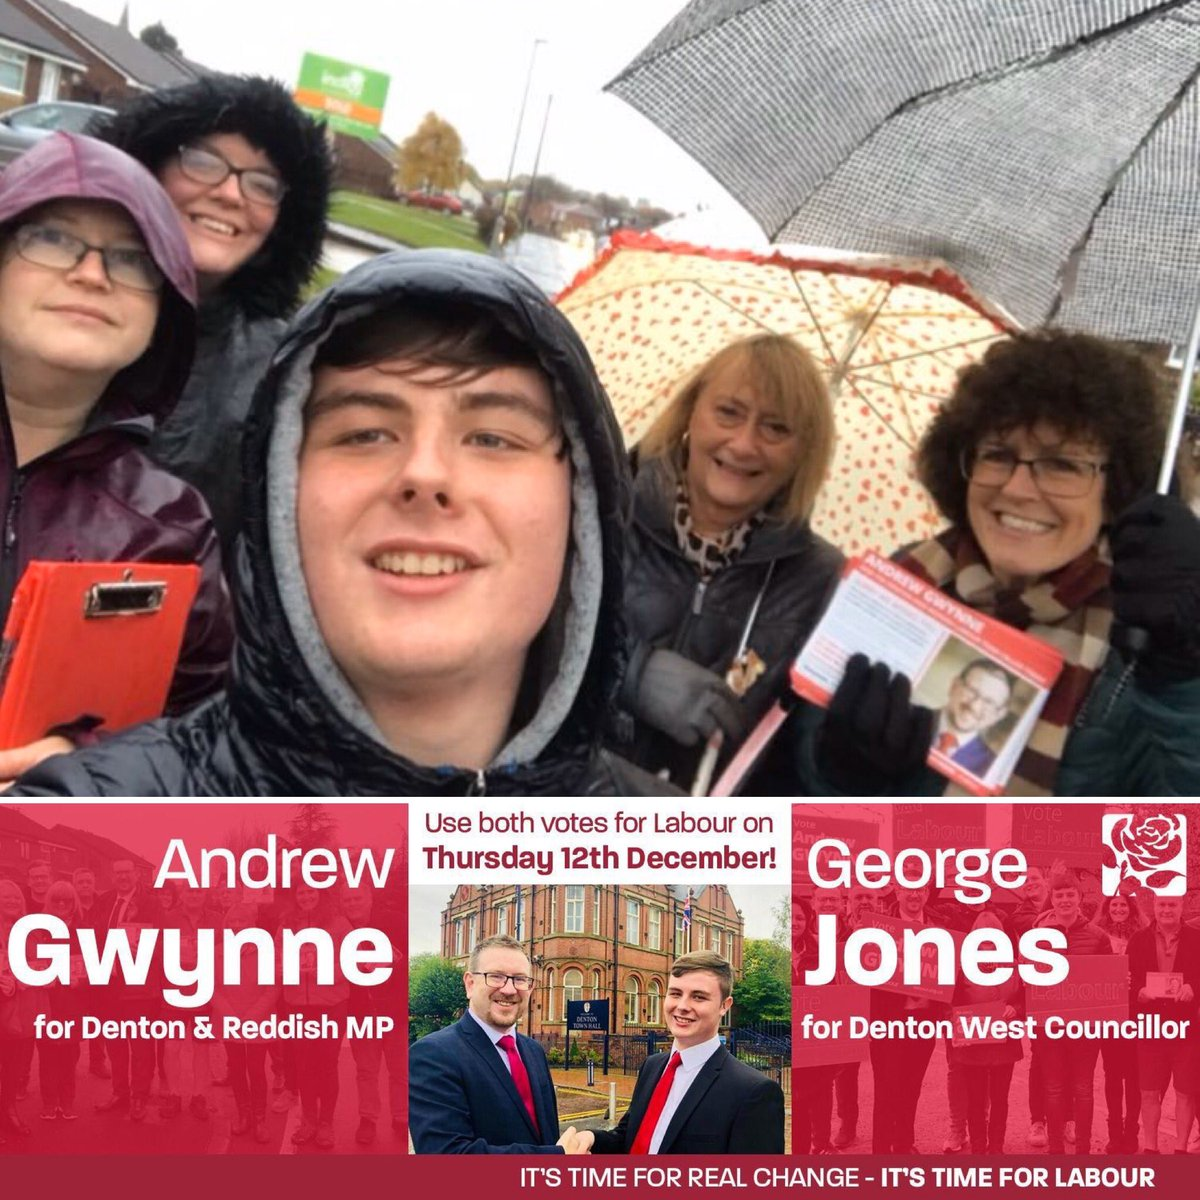 Great to see @GeorgealexJones and the @DentonReddish Labour Team on the #LabourDoorstep this afternoon in Denton West (where there's also a local by-election on 12 December) I was in Darwen launching a #ByTheMany rally with @AlysonDBarnes and @jeremycorbyn #TwoVotesForLabour